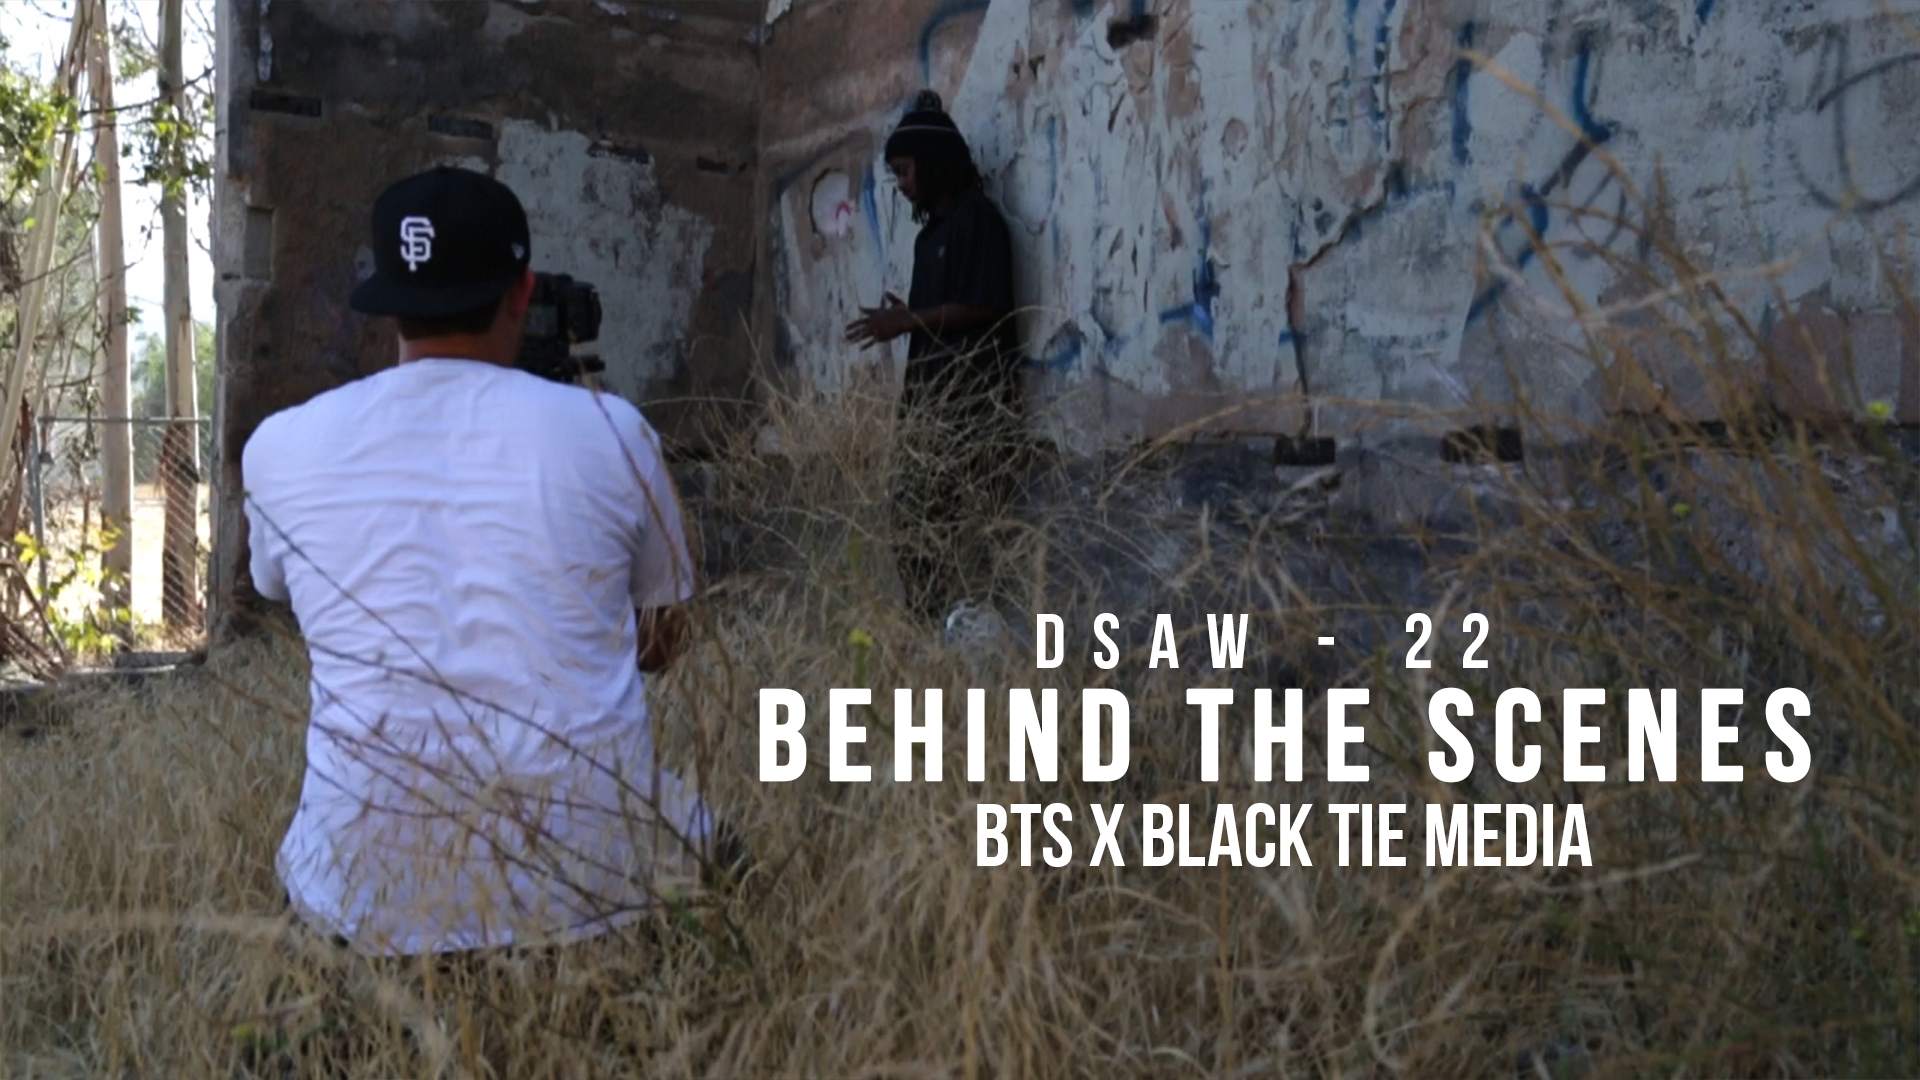 BTS of the DSAW-22 Music Video